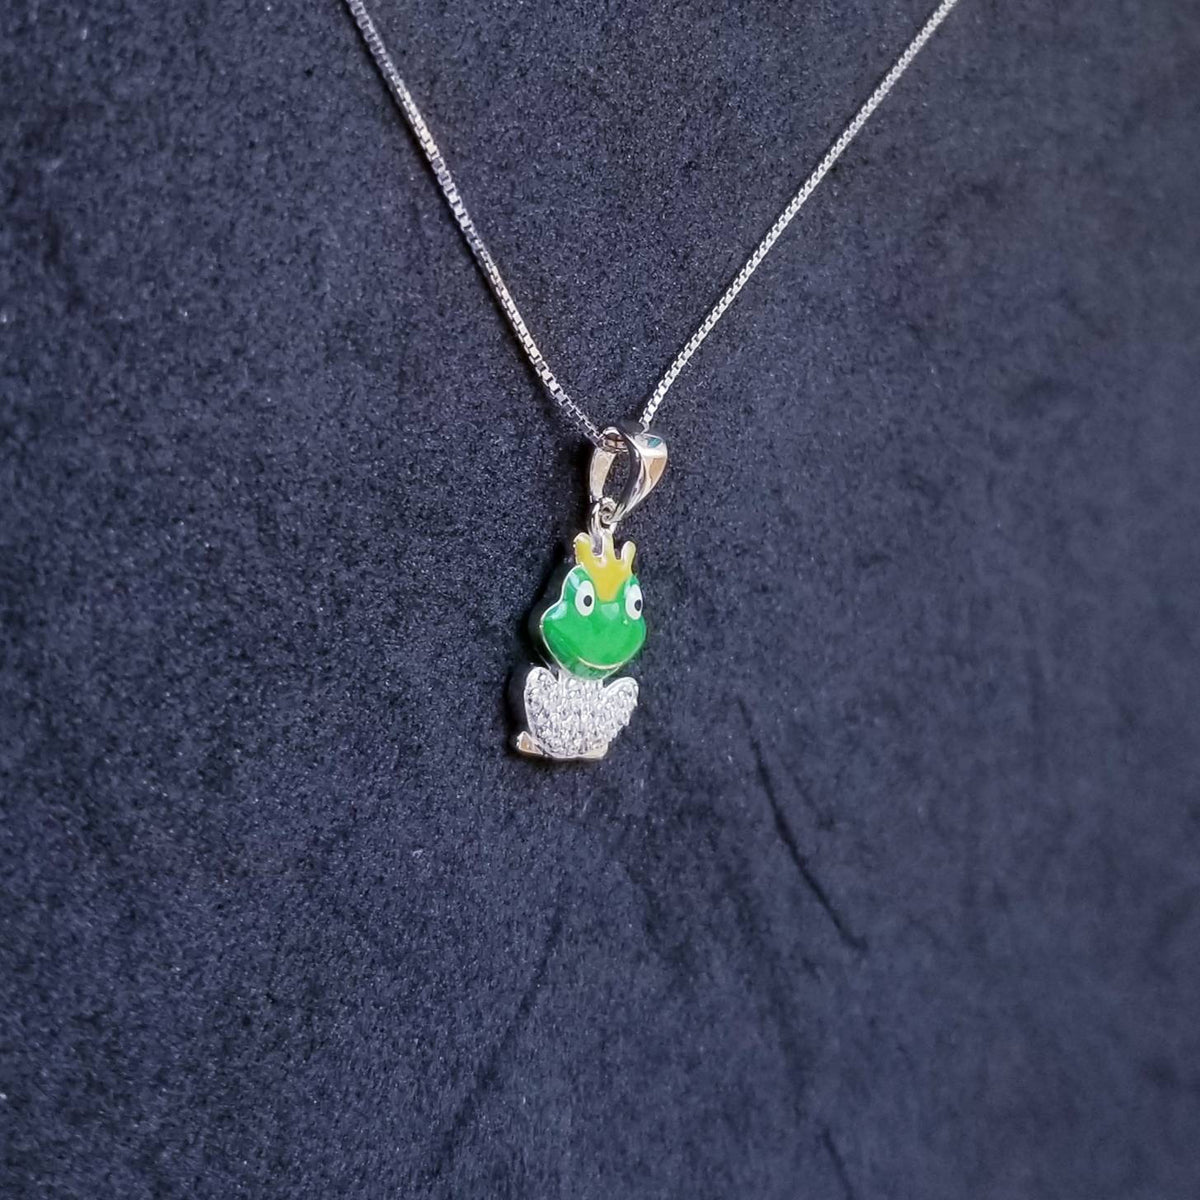 New 14k White Gold On 925 Sterling Silver Cute Prince Frog CZ Pendant Free Chain